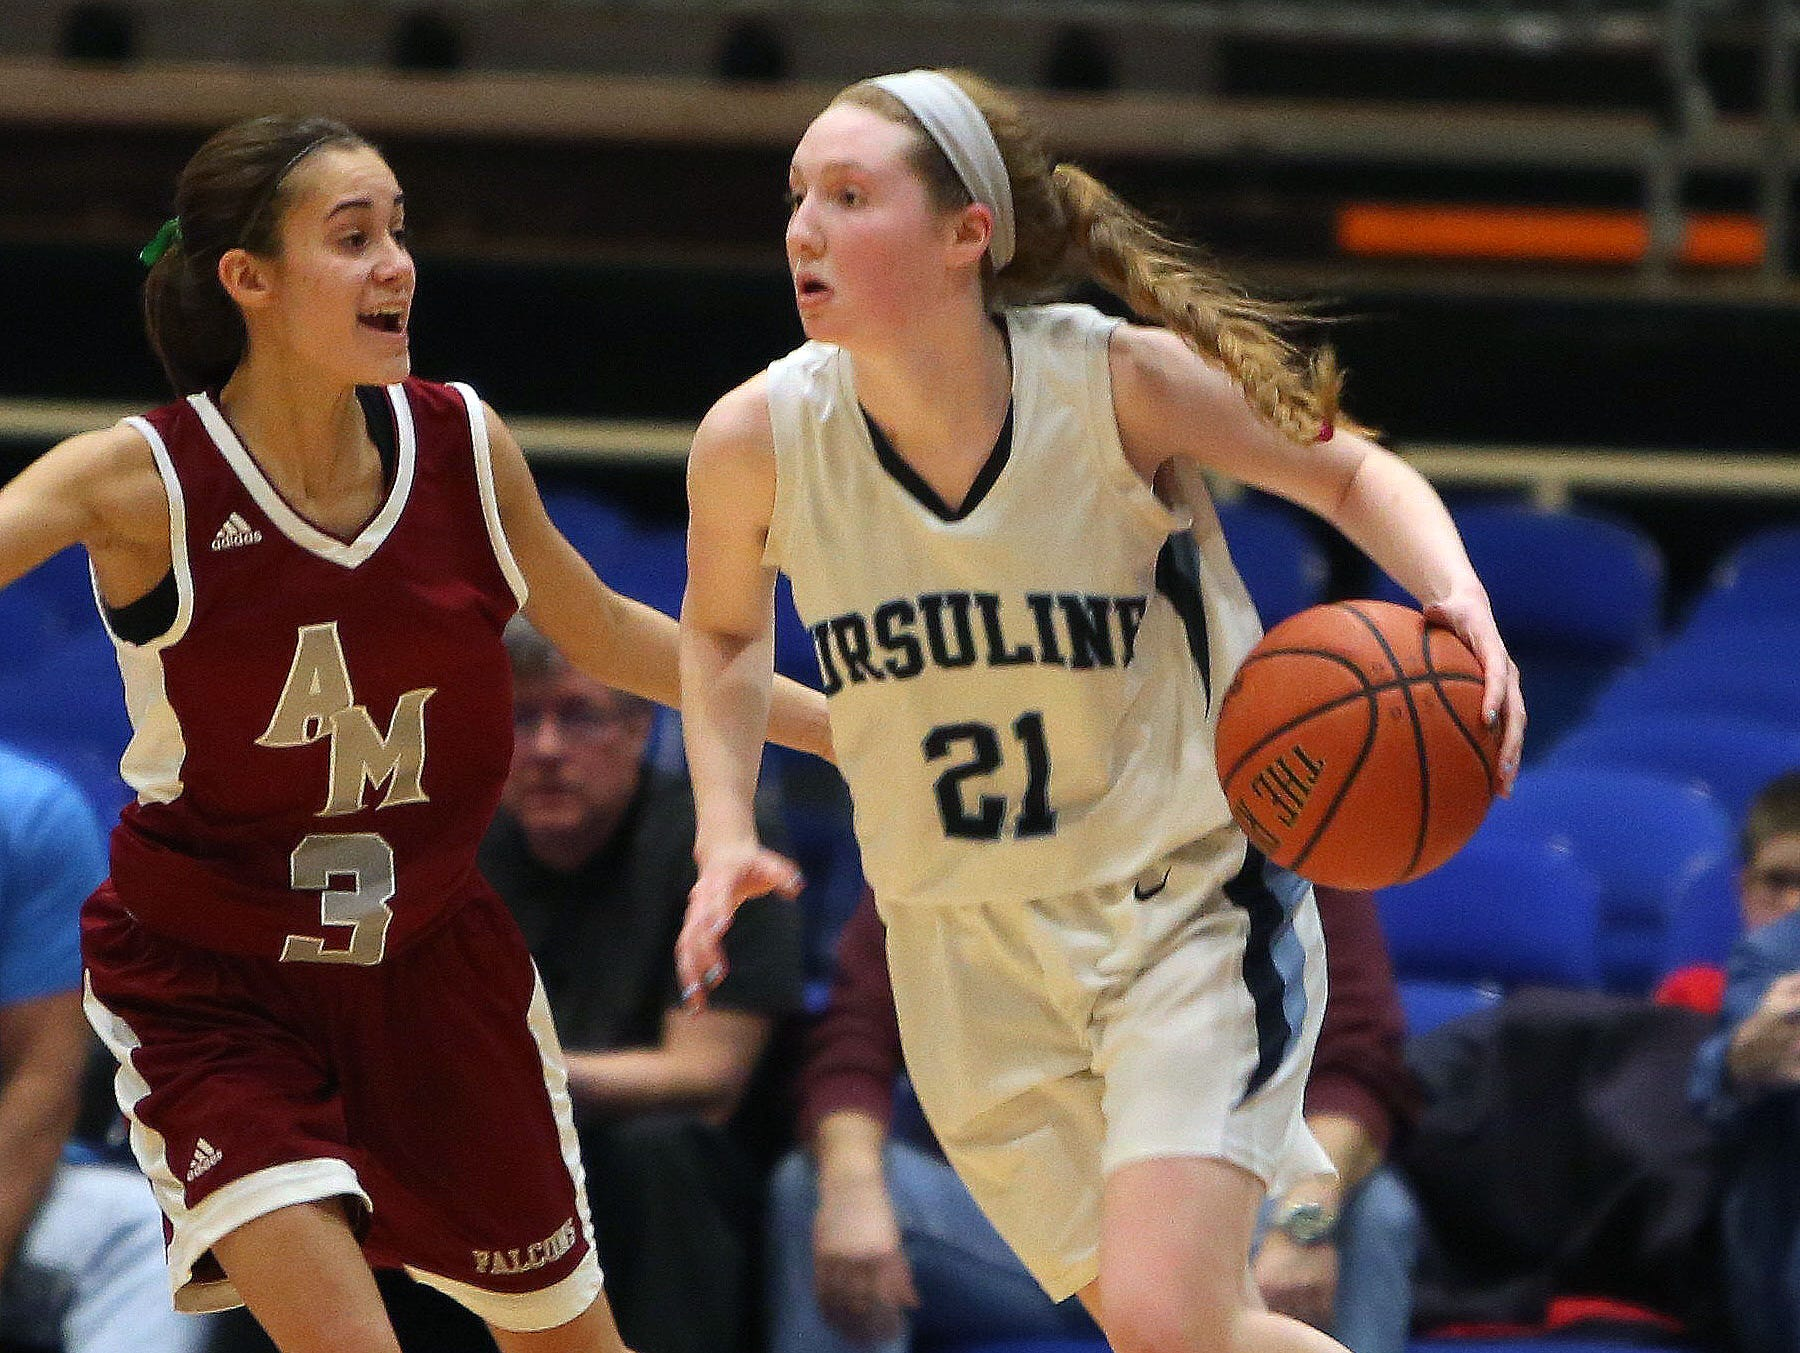 Albertus Magnus guard Dani LaRochelle (3) defends Ursuline forward Katie McLoughlin (21) during a Section 1 Class A semifinal at the Westchester County Center.